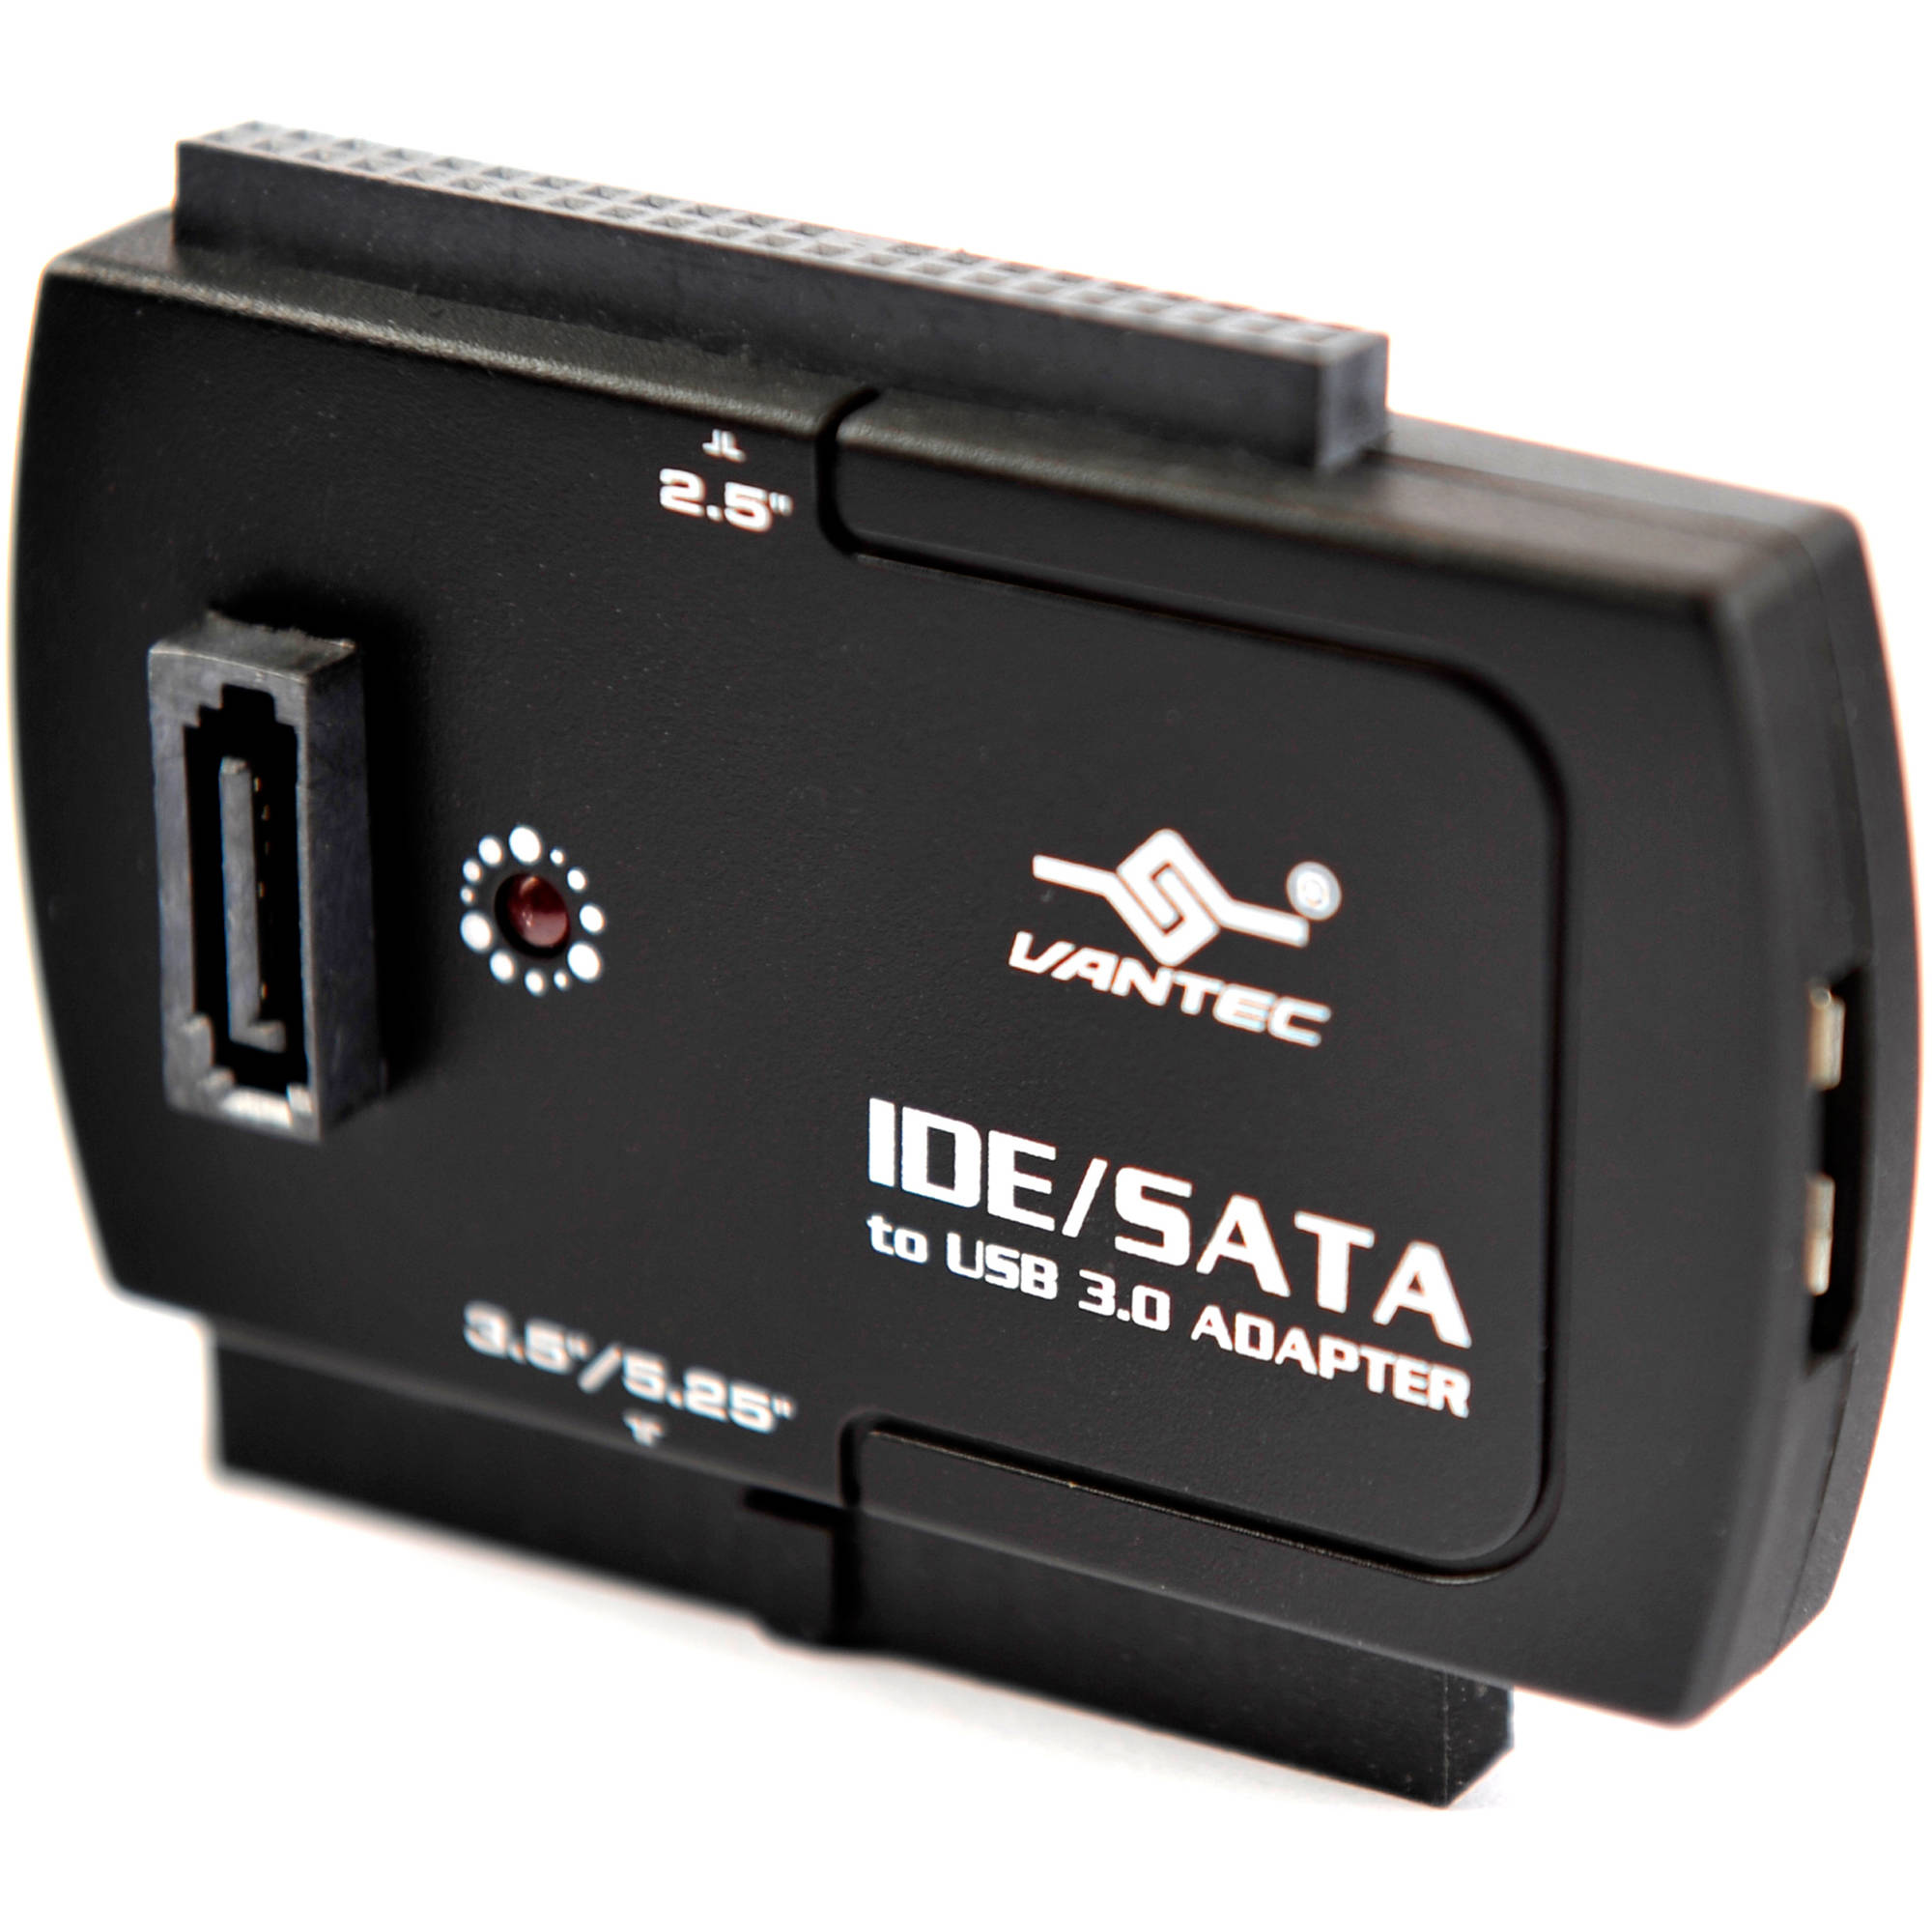 Vantec cb isa200 u3 nexstar sata ide to usb 3.0 adapter, black ...